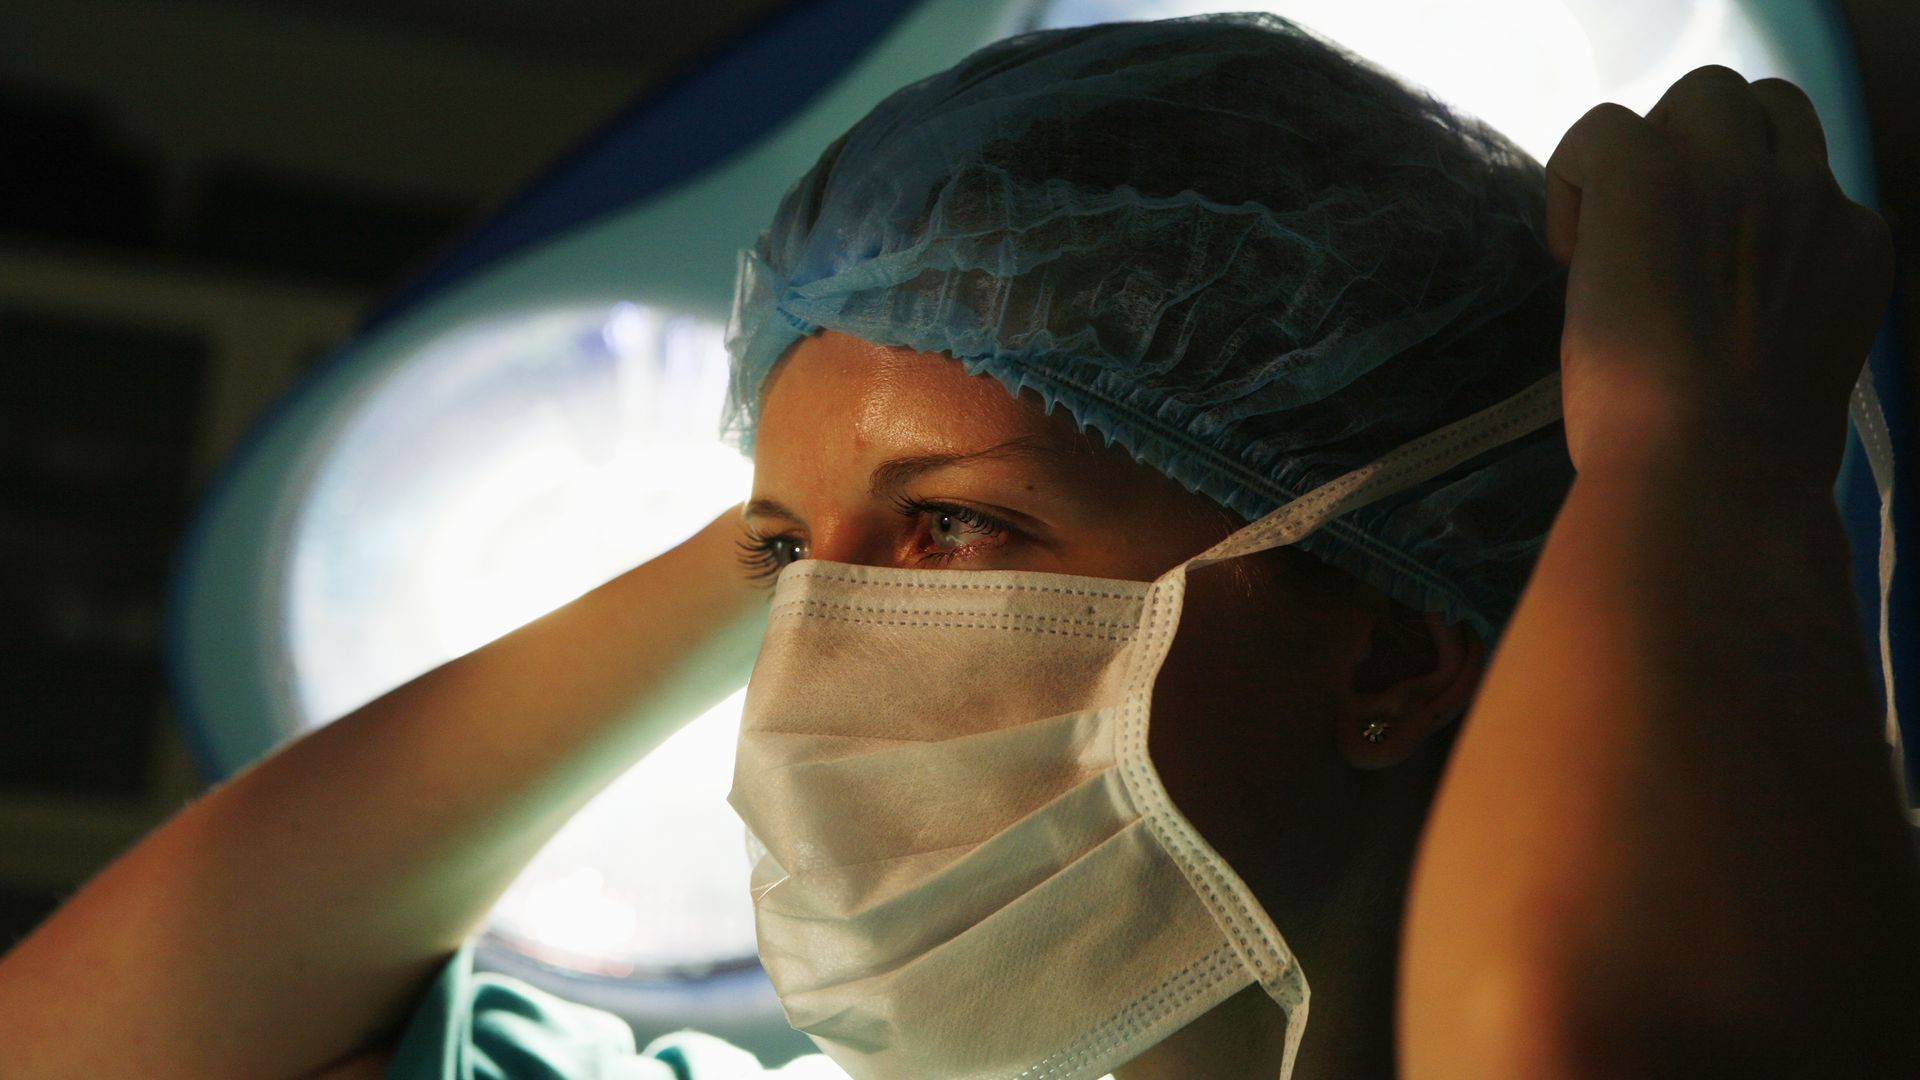 A female surgeon ties her surgical mask around her face.